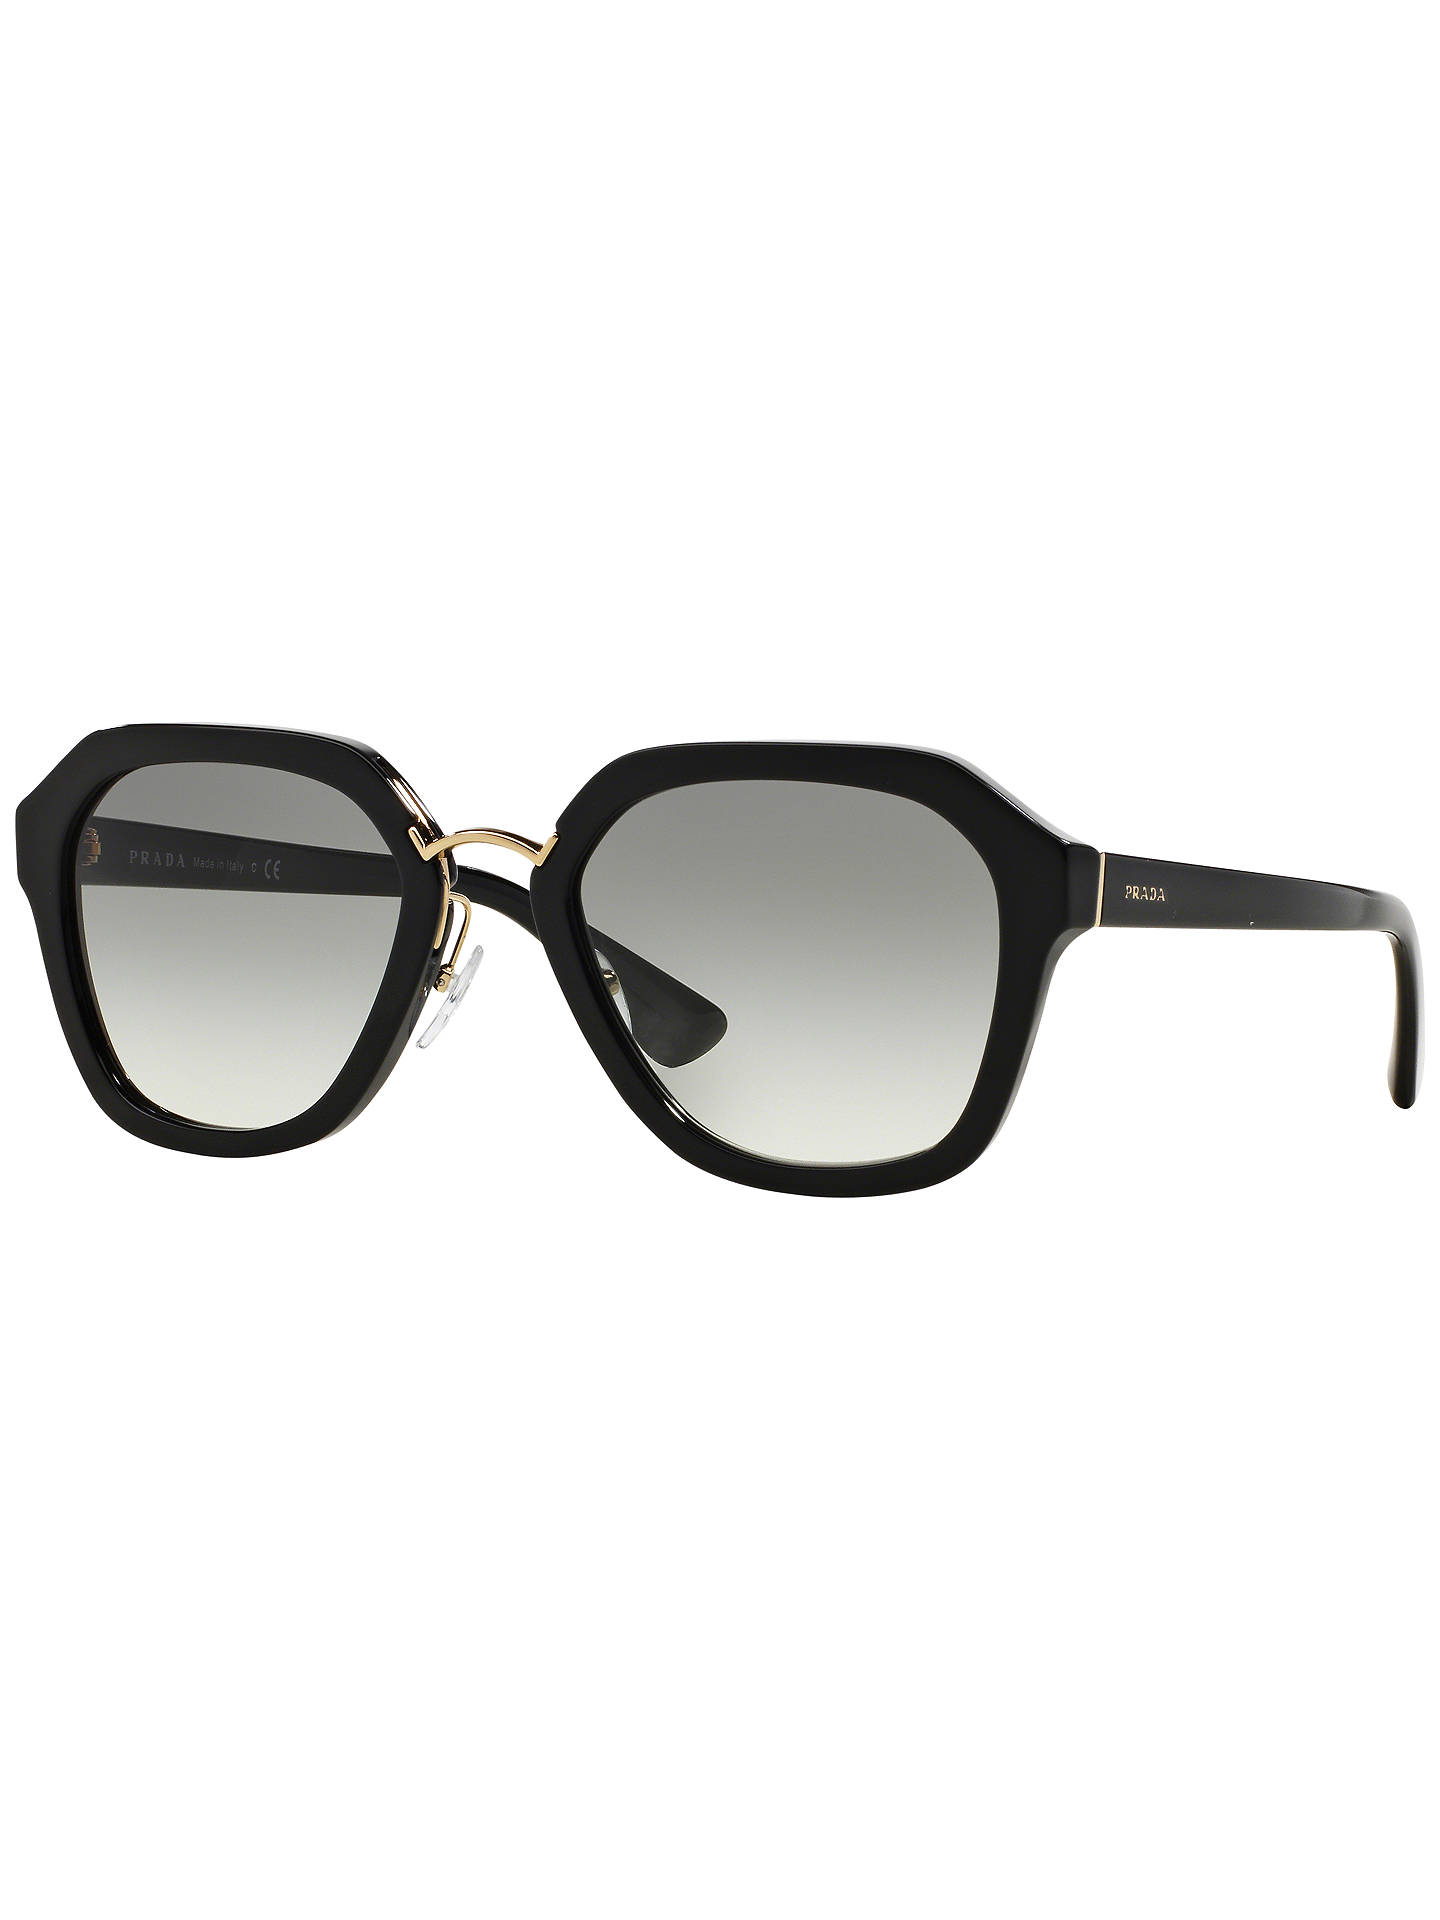 c55060399e5 Prada PR25RS Cinema Sunglasses at John Lewis   Partners